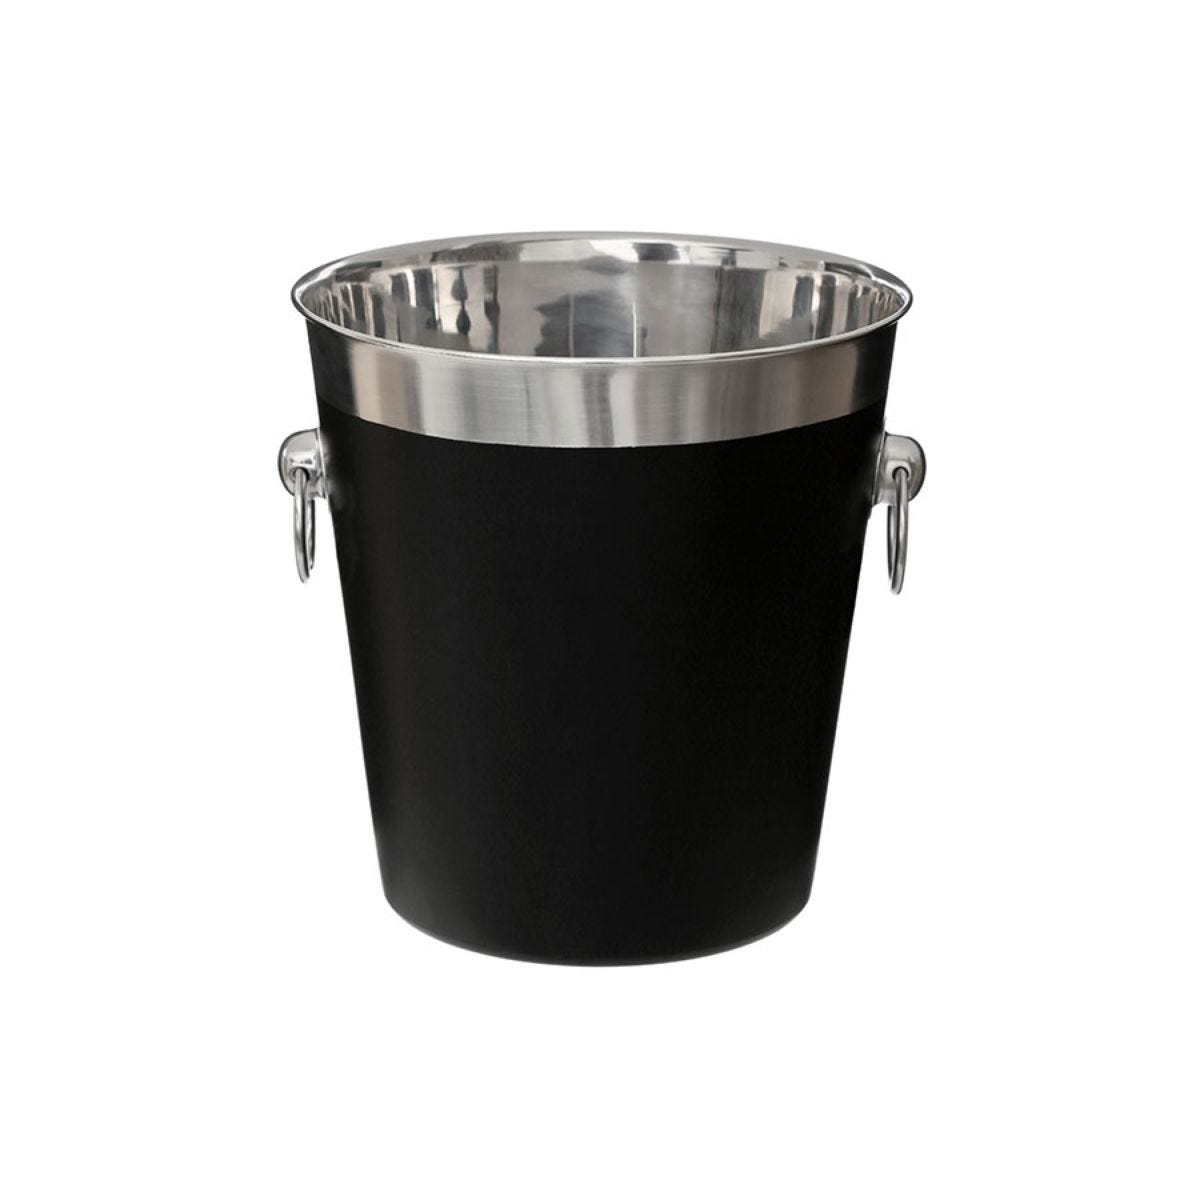 Premier Housewares Stainless Steel Champagne Bucket - Black